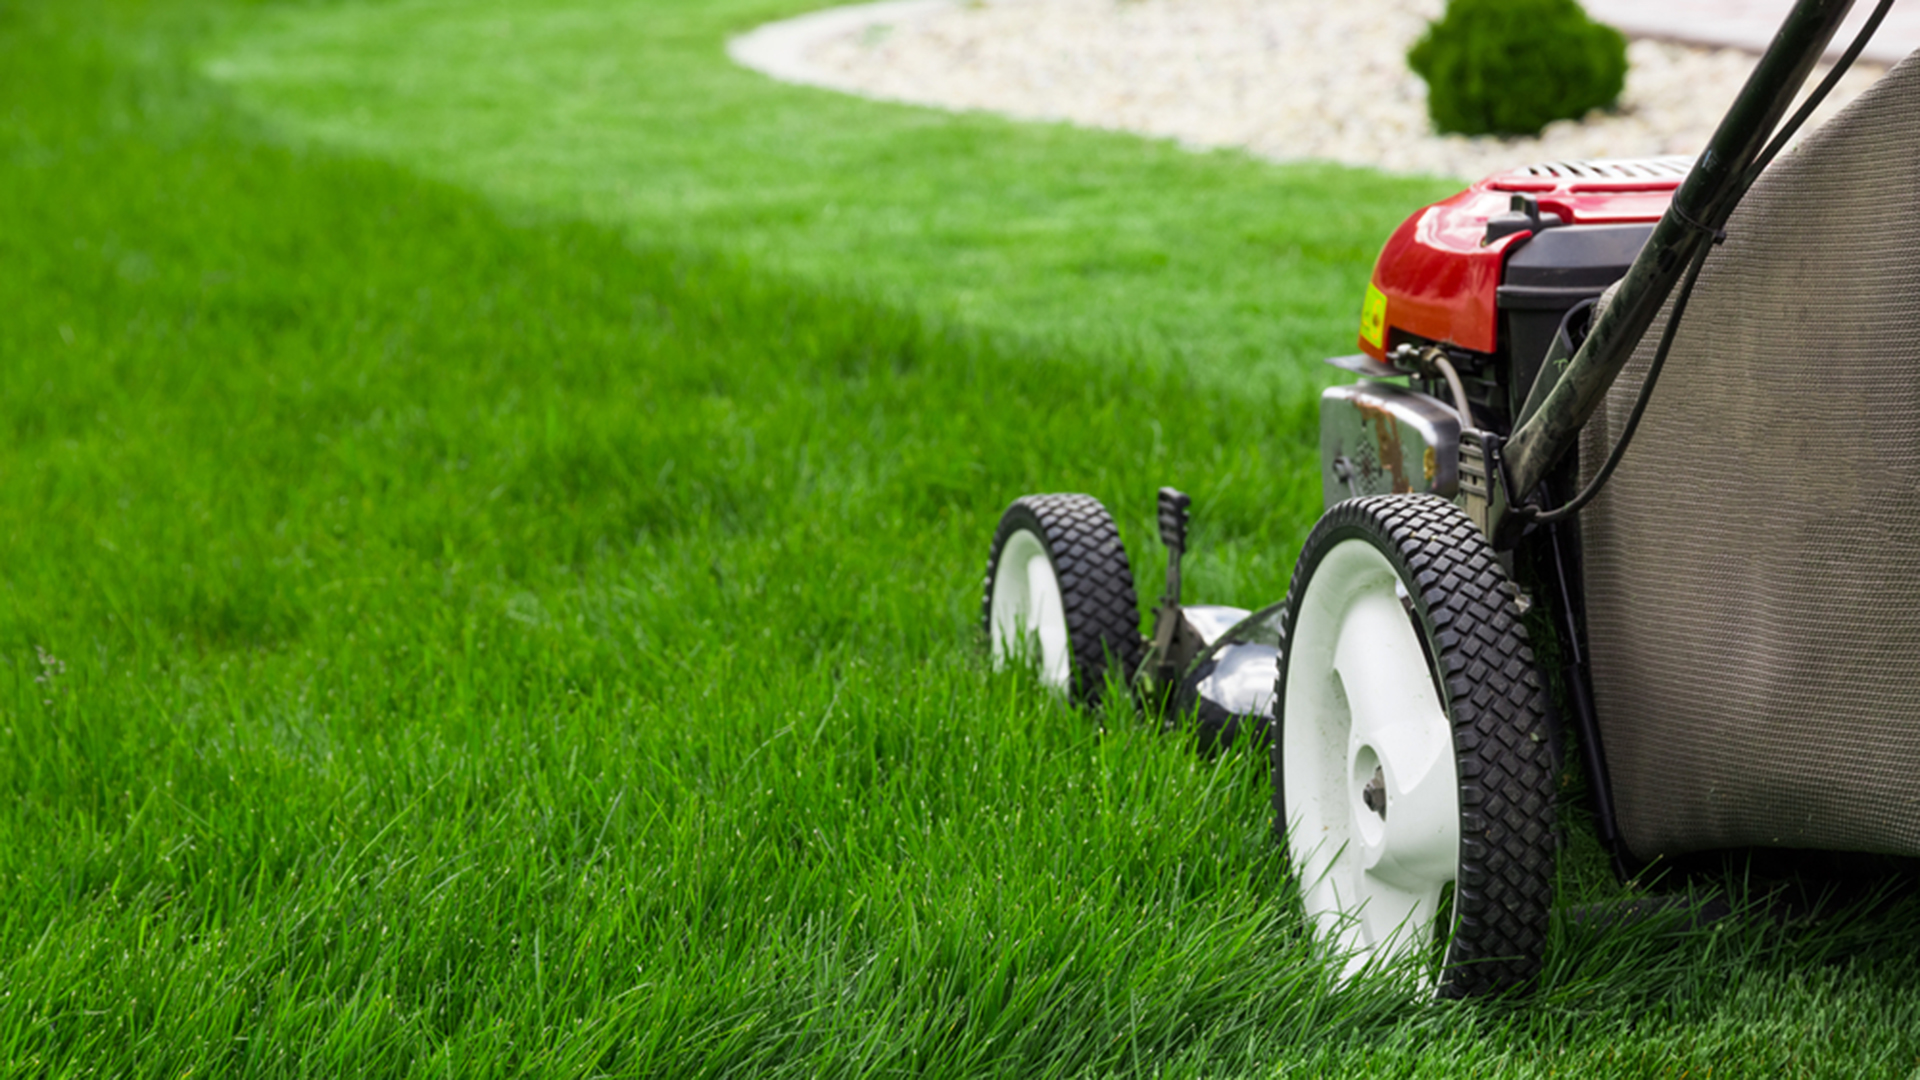 One Owner Car Guy >> Lawn care: Here are lawn care tips for your yard - TODAY.com